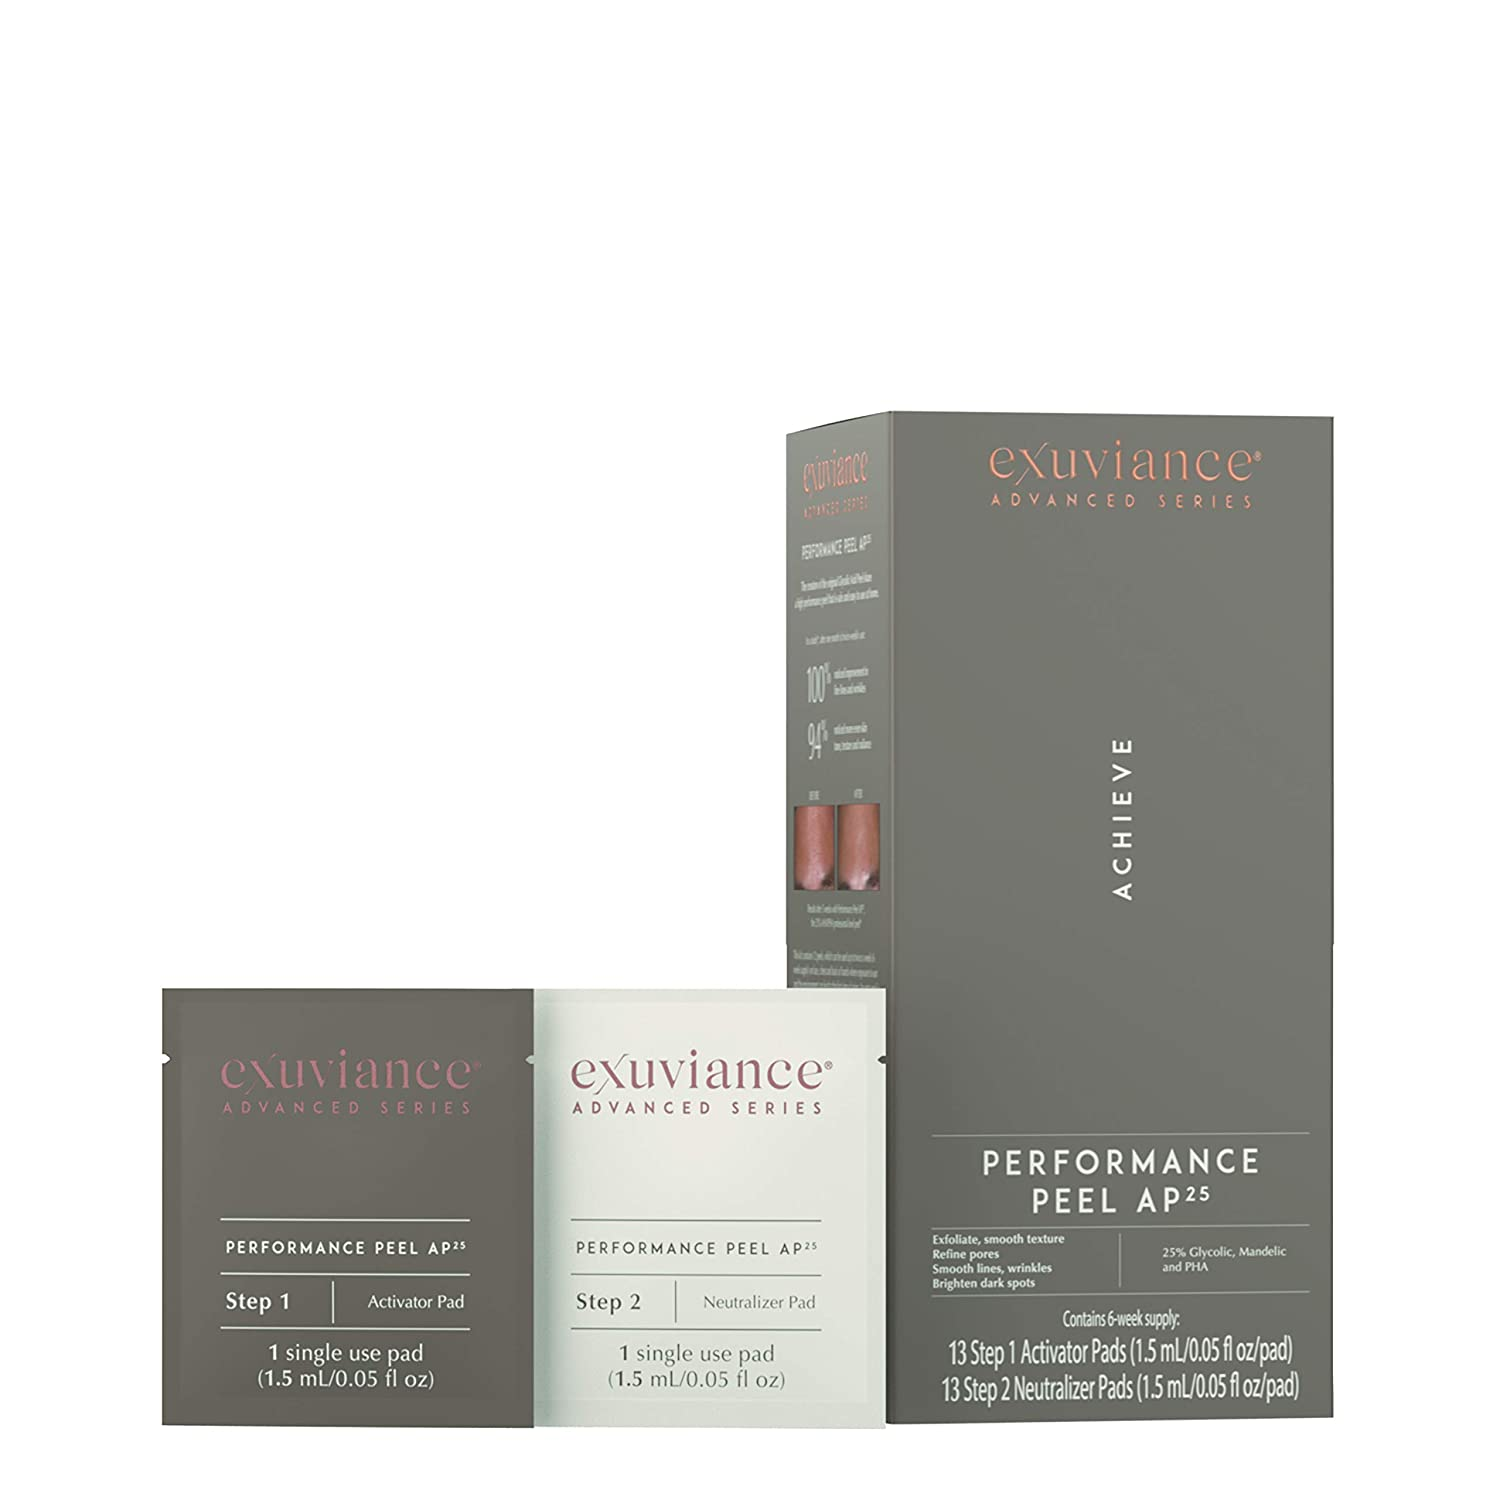 Exuviance Performance Peel AP25 Glycolic Acid At-Home Peel, 6 Week Supply